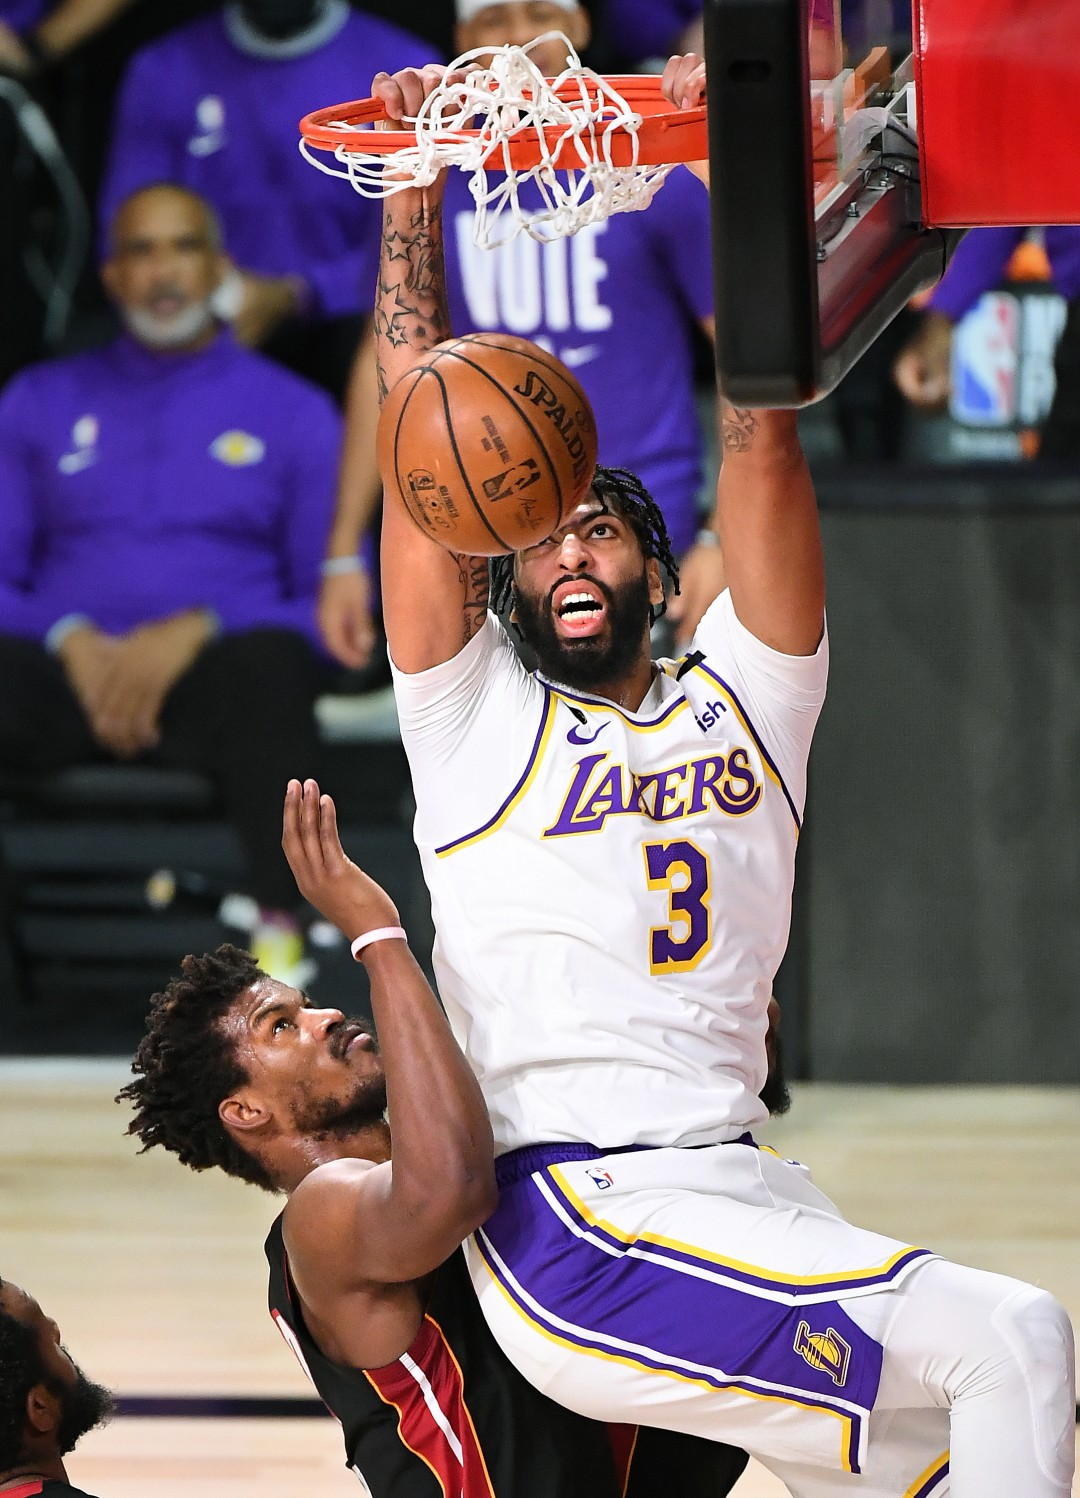 Lakers forward Anthony Davis dunks over Miami Heat forward Jimmy Butler in the first quarter of Game 6 of the NBA Finals.(Wally Skalij / Los Angeles Times)